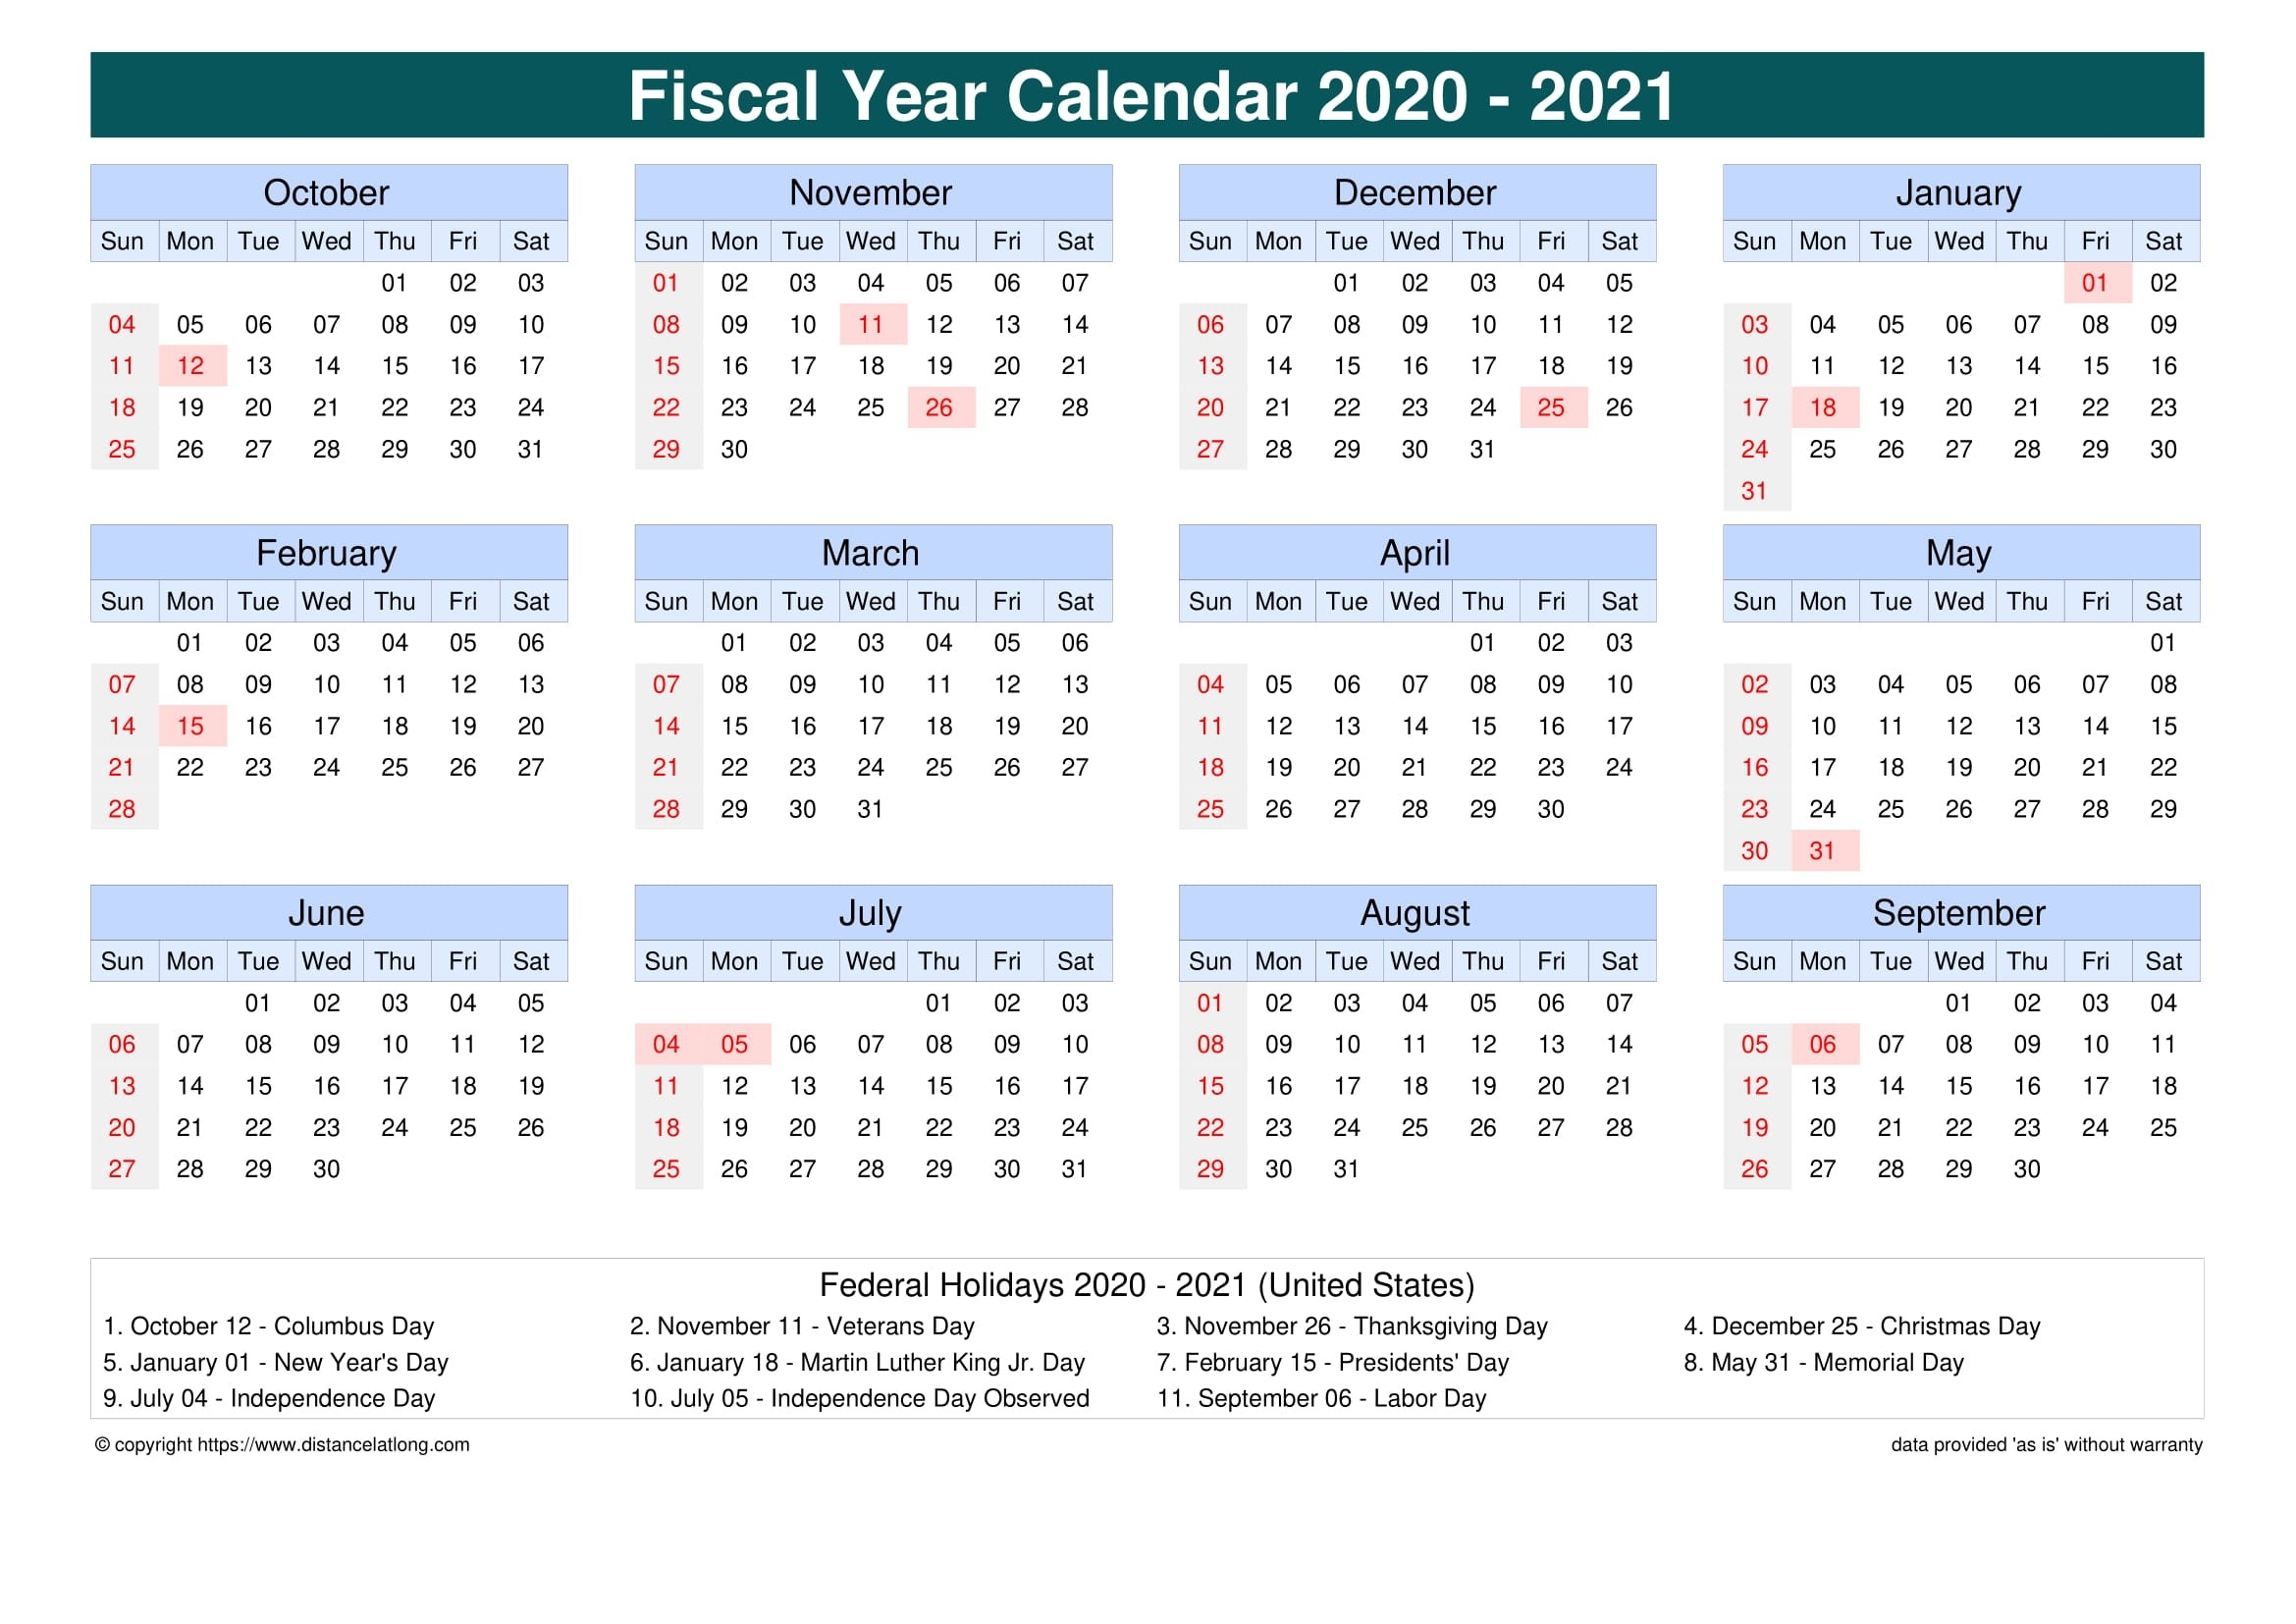 Fiscal Year 2020-2021 Calendar Templates, Free Printable  2021 Financial Year Calendar